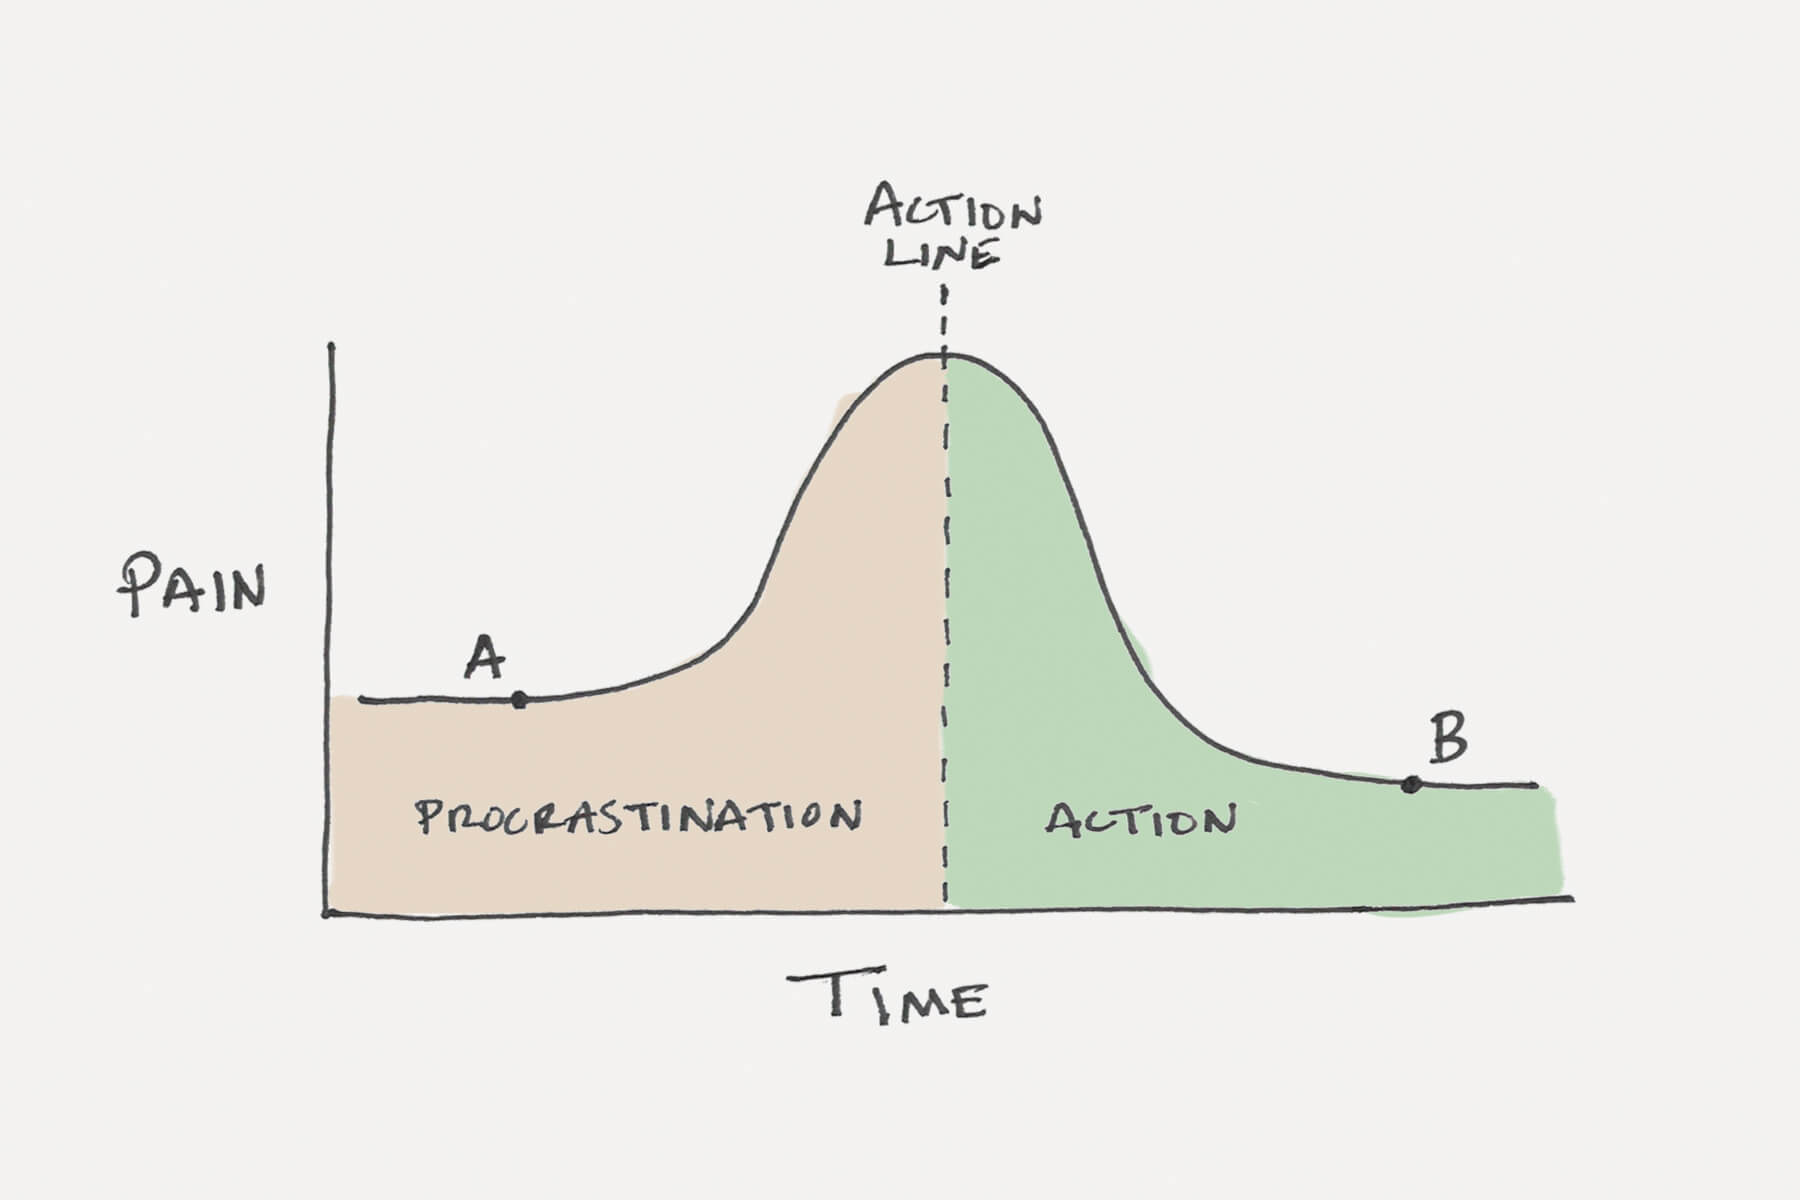 The Procrastination-Action Line